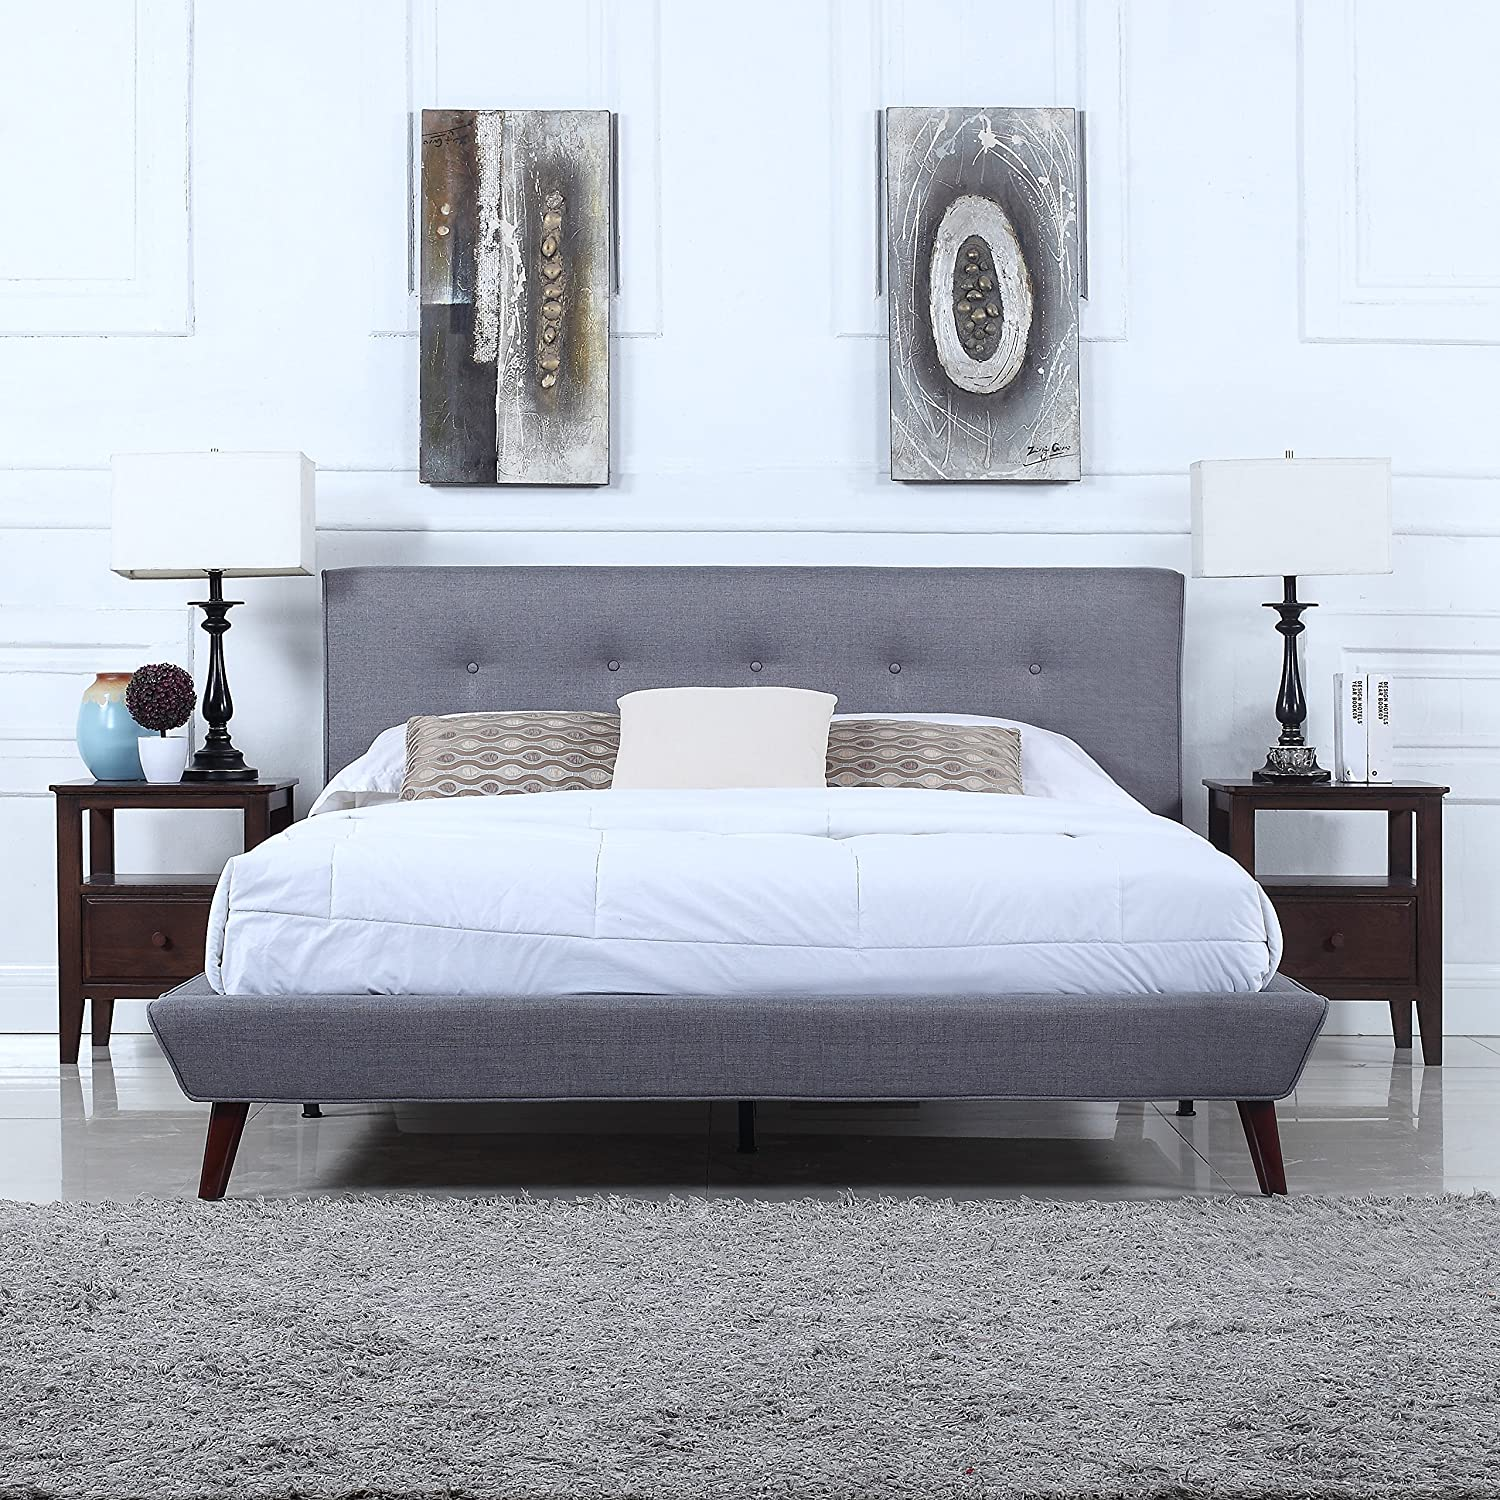 a queen to small sized headboard and it this raise durable features upholstery elegant has linen pin black bed tufted off platform frame legs wooden button